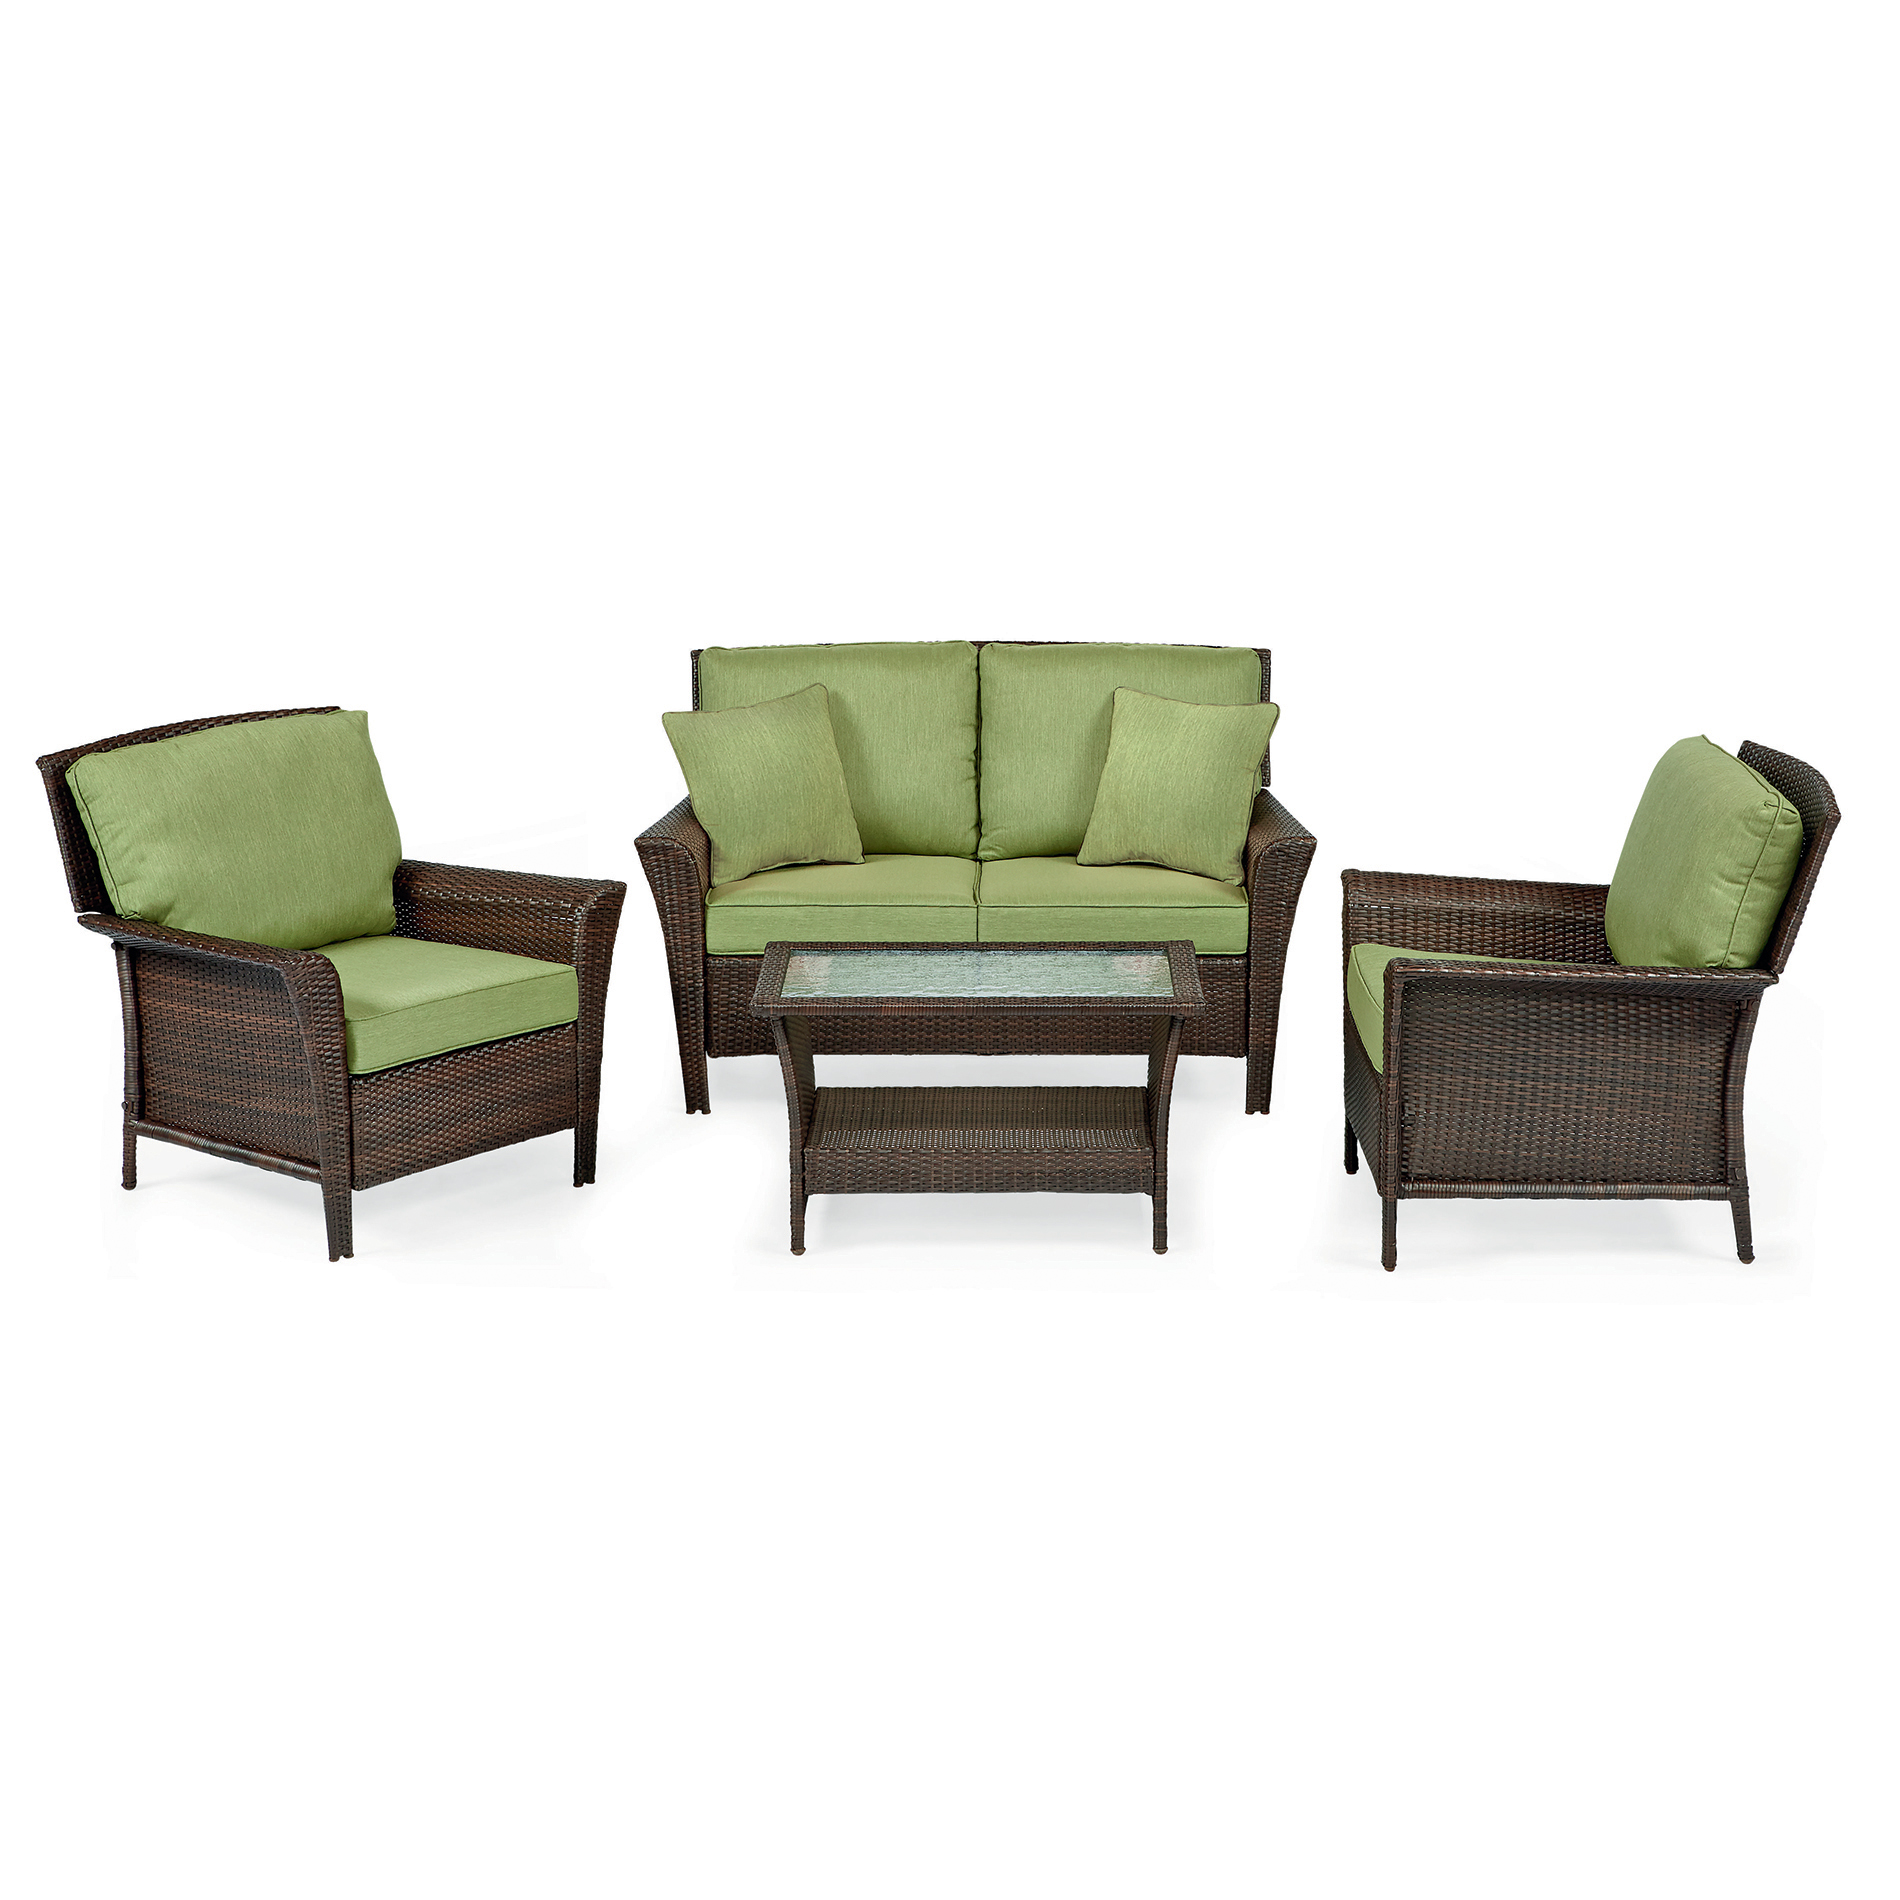 Ty Pennington Parkside 4 Pc Seating Set Green Outdoor